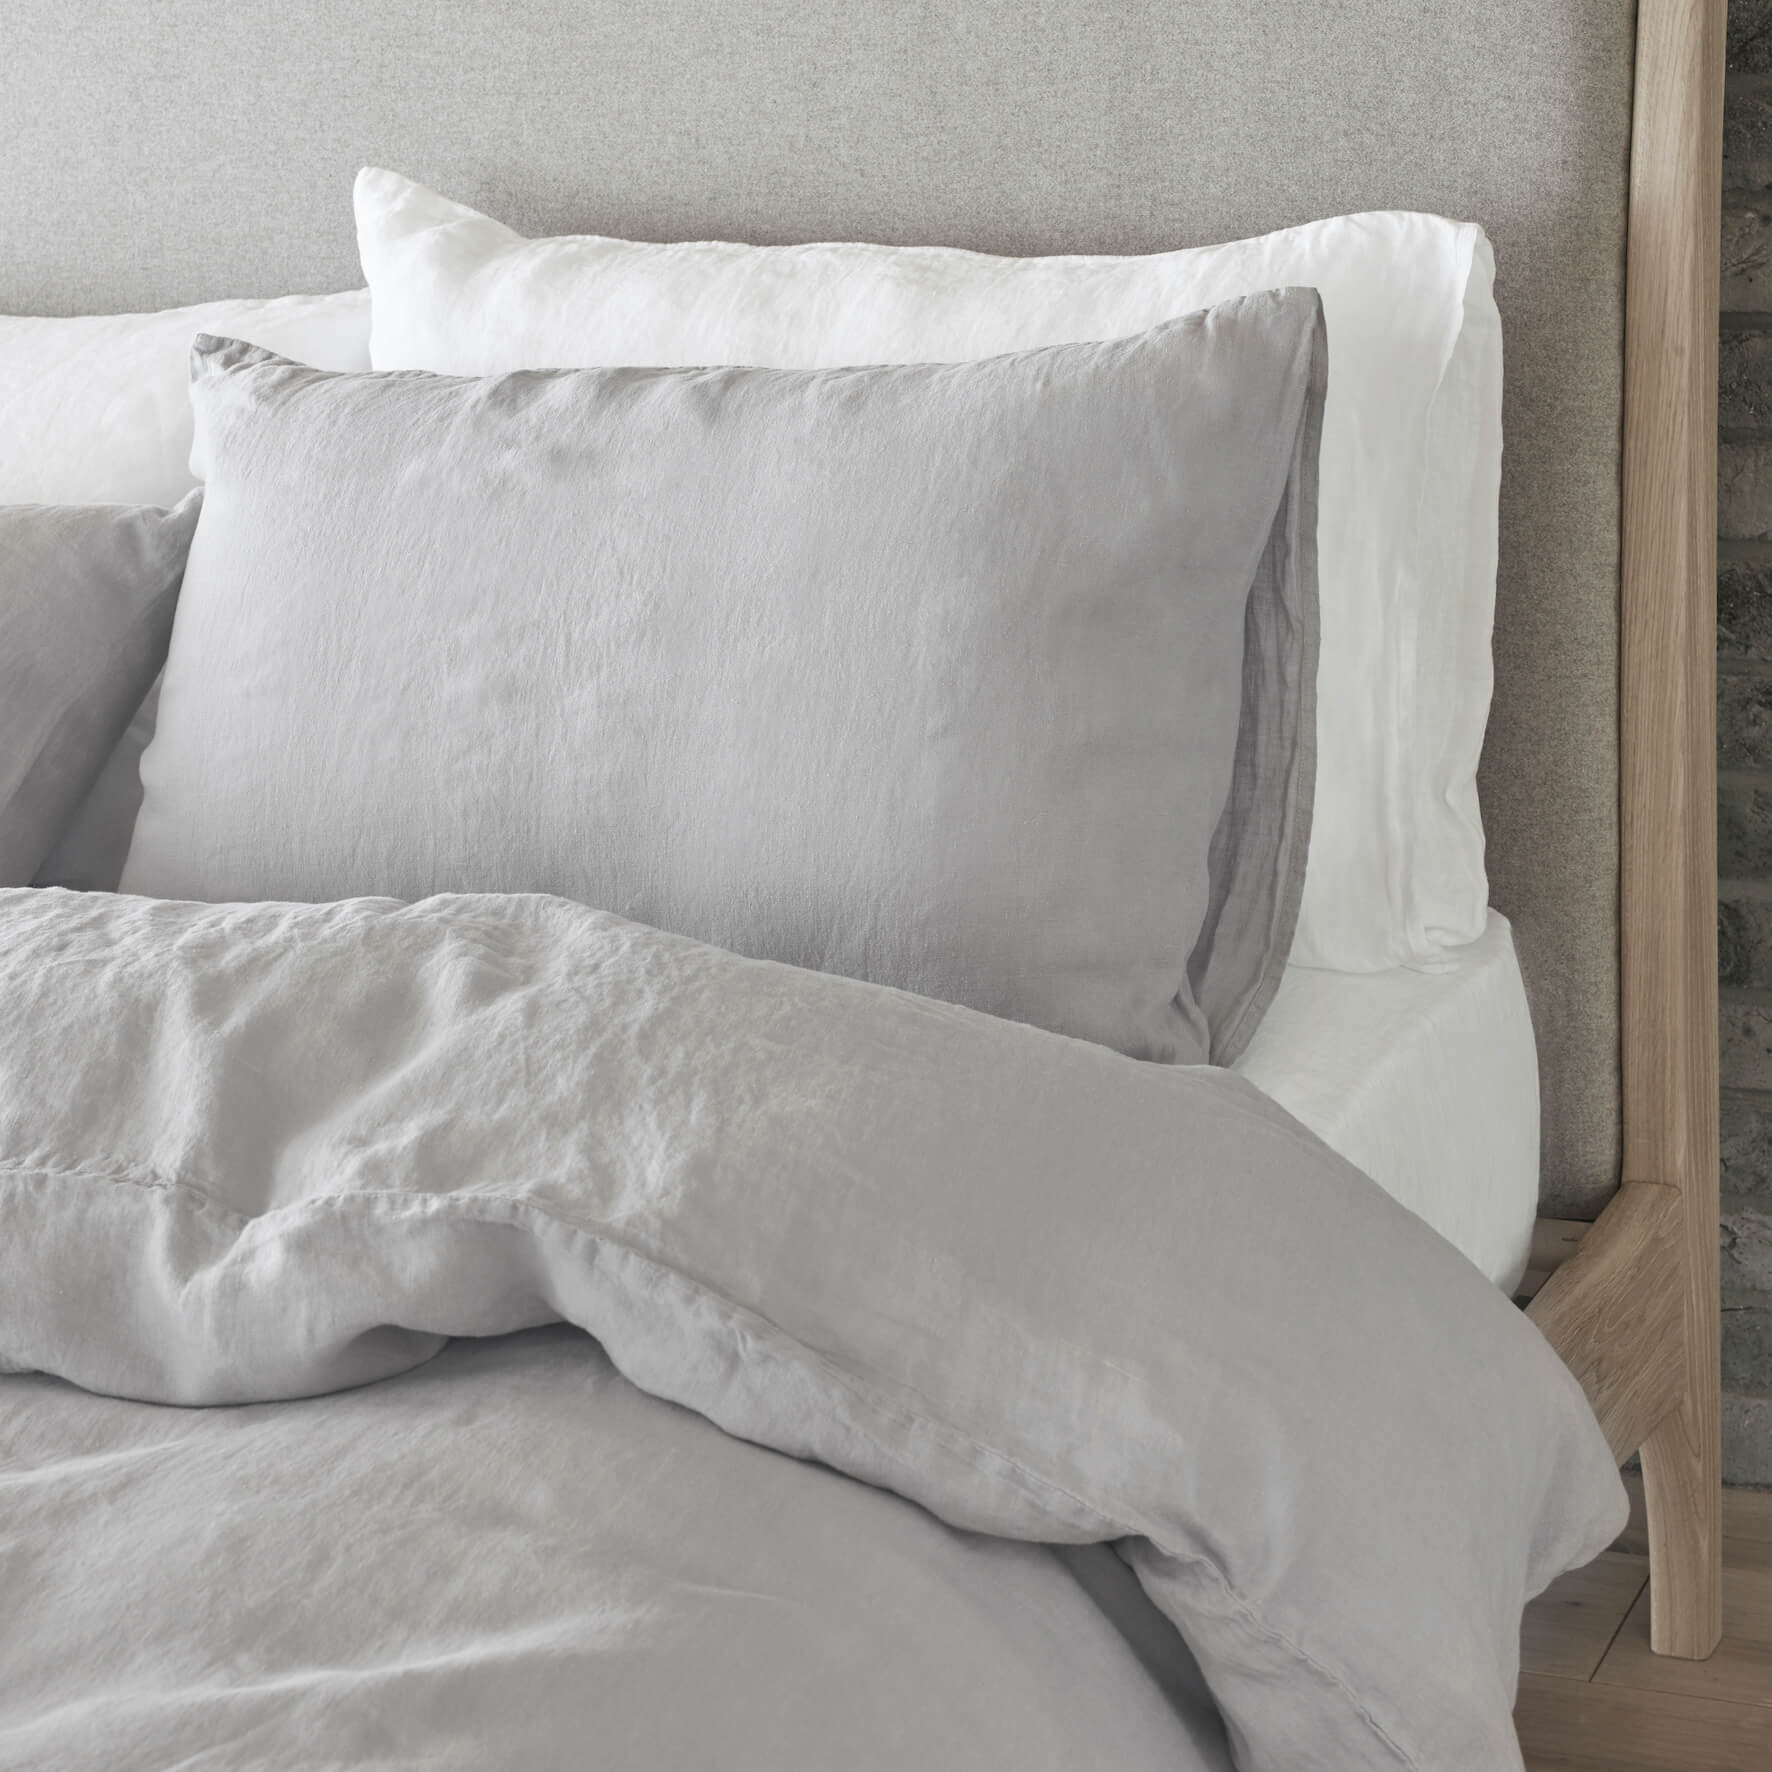 Take your bed from boring to beautiful with my bedroom! Learn how to dress your bed like a pro with 5 expert tips from interior stylist Maxine Brady.